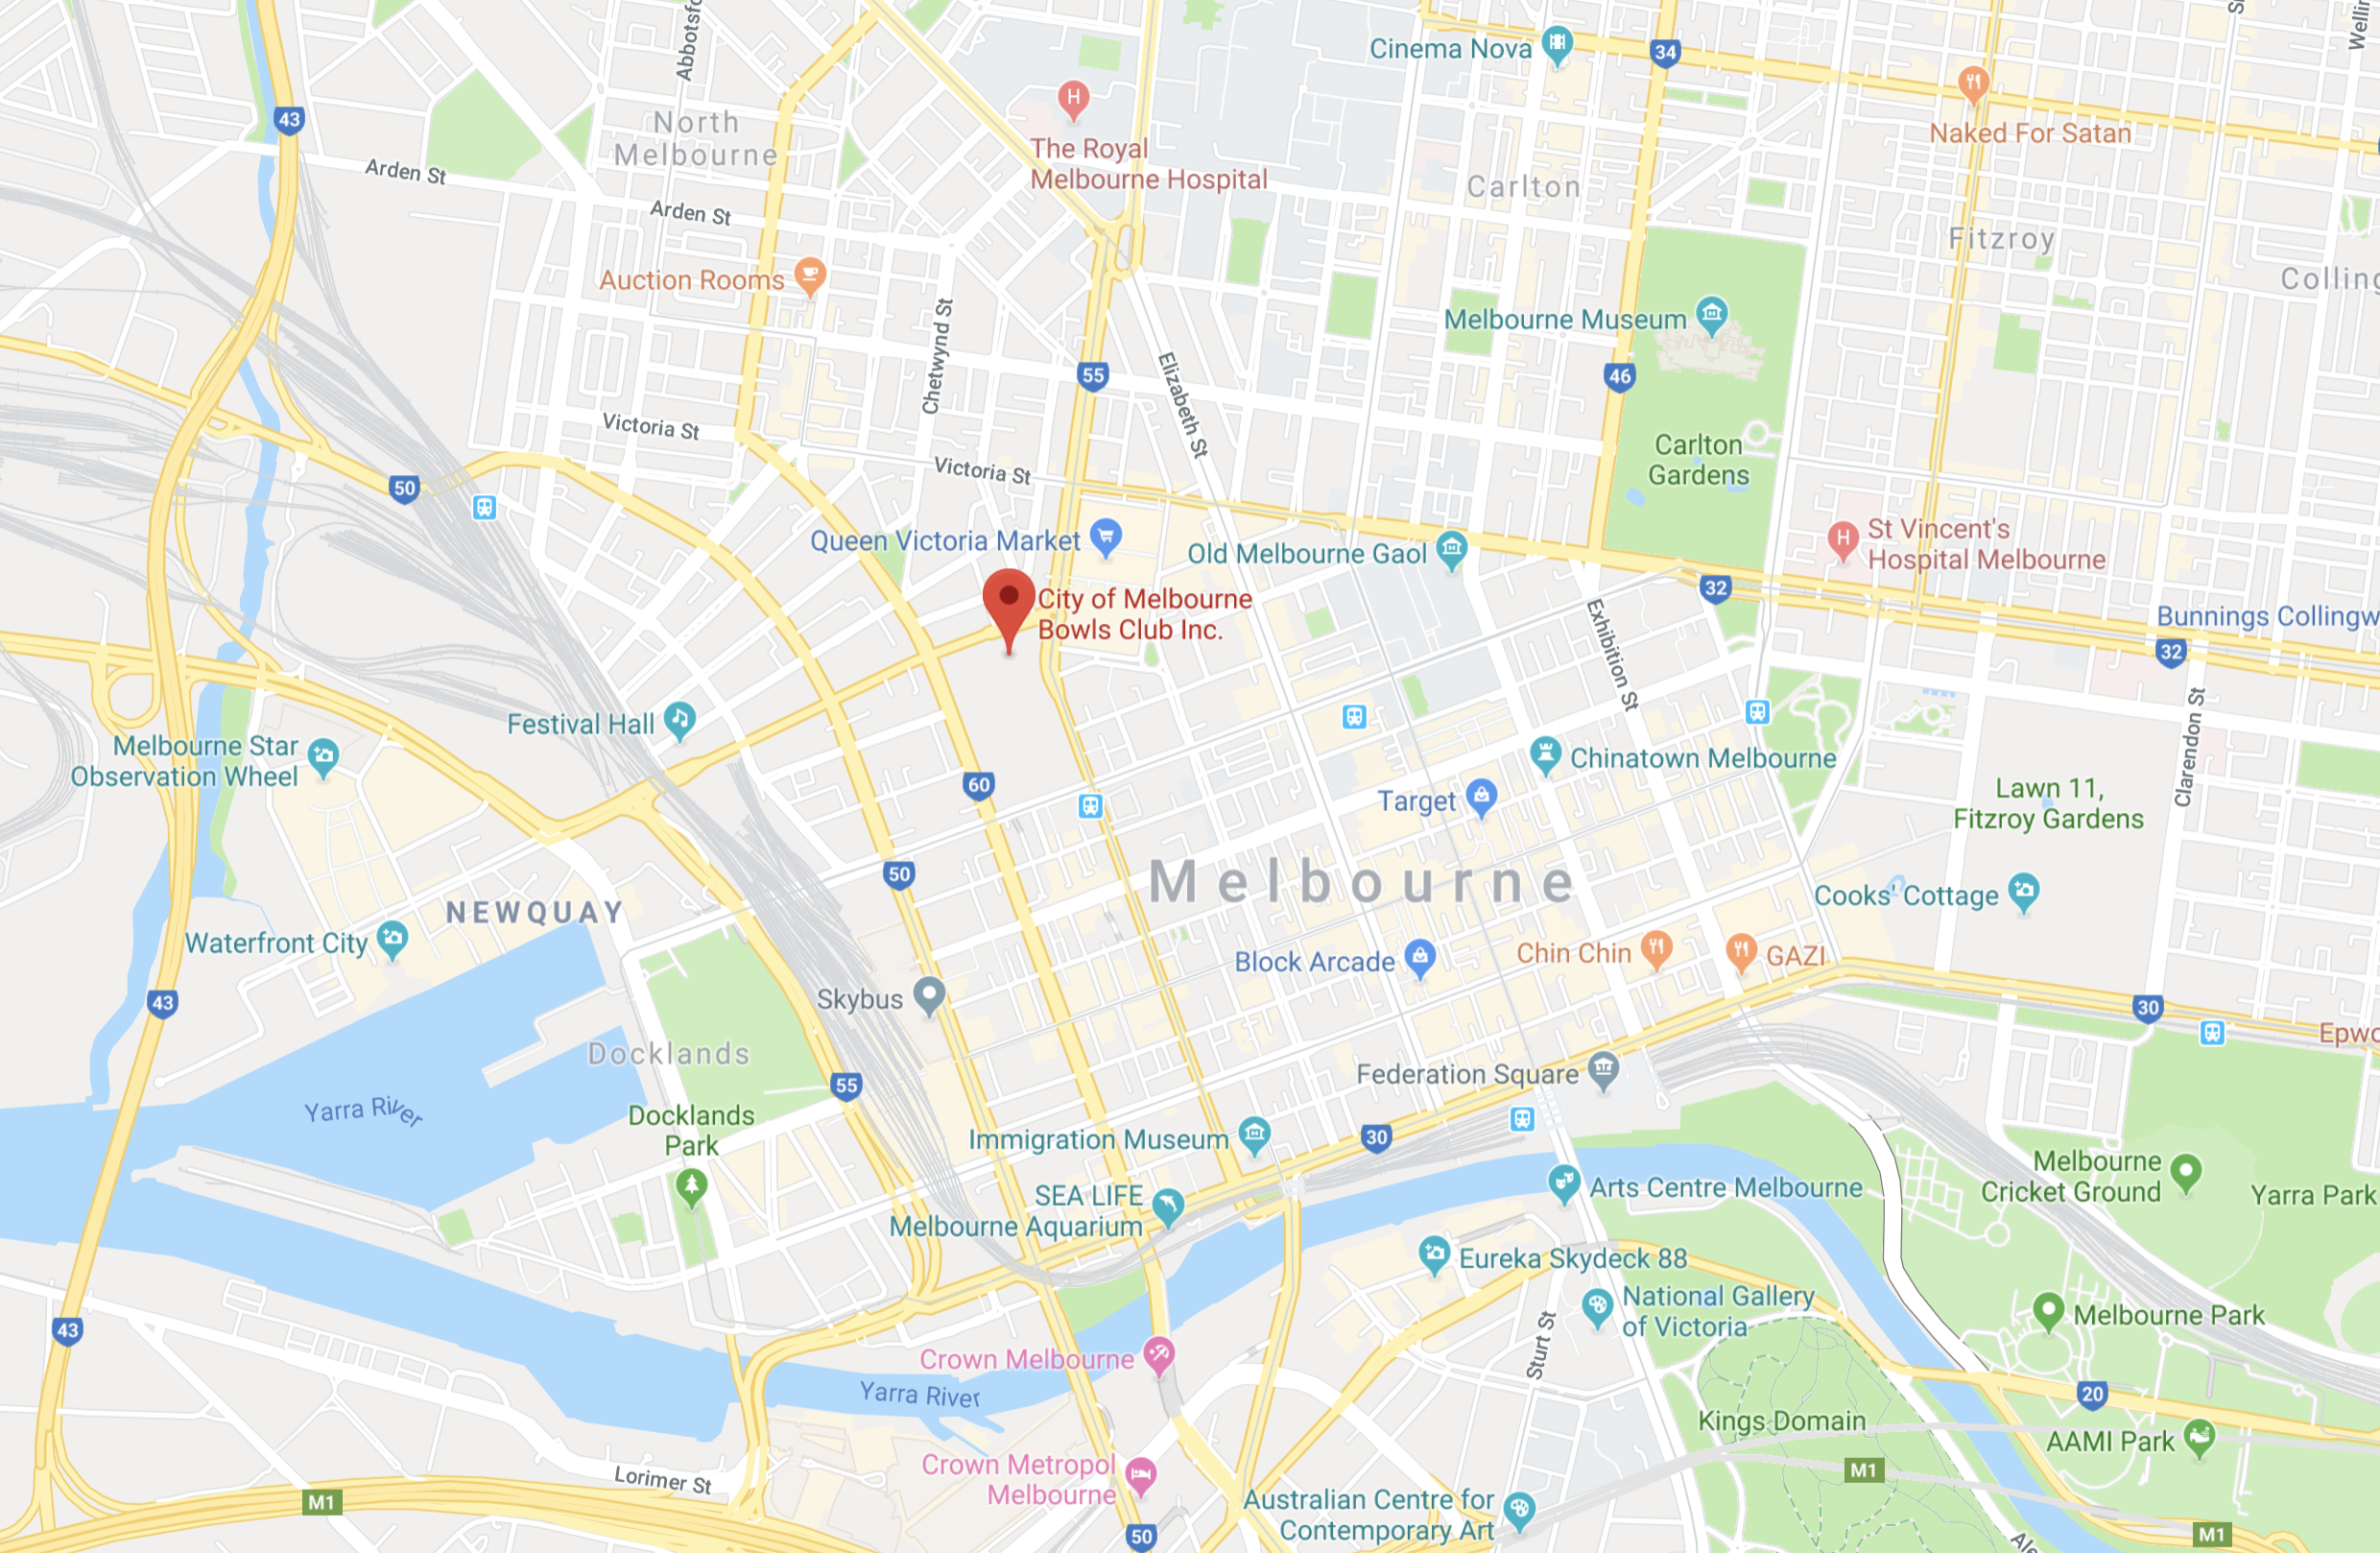 map of bowls club & melbourne